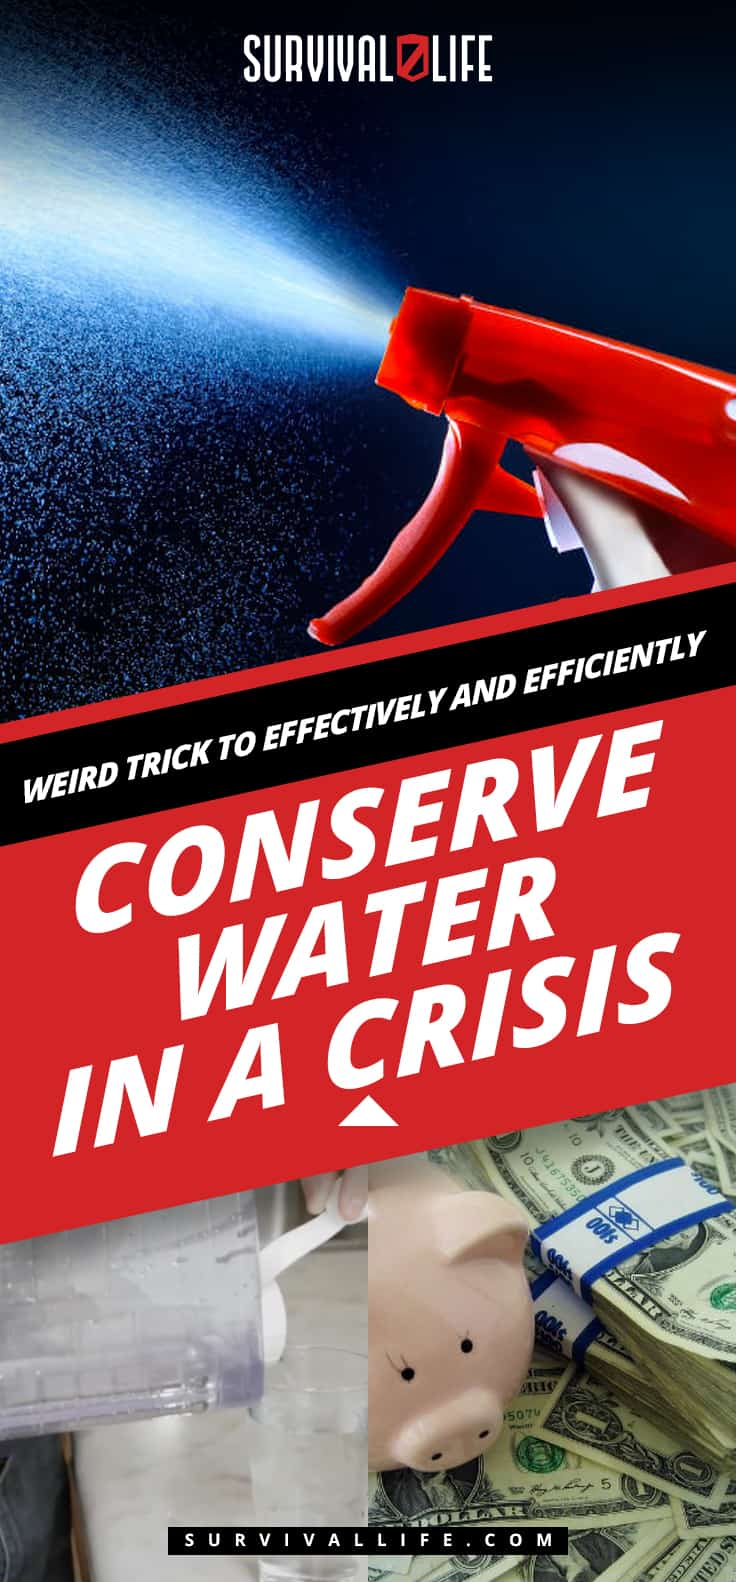 Weird Trick To Effectively And Efficiently Conserve Water In A Crisis